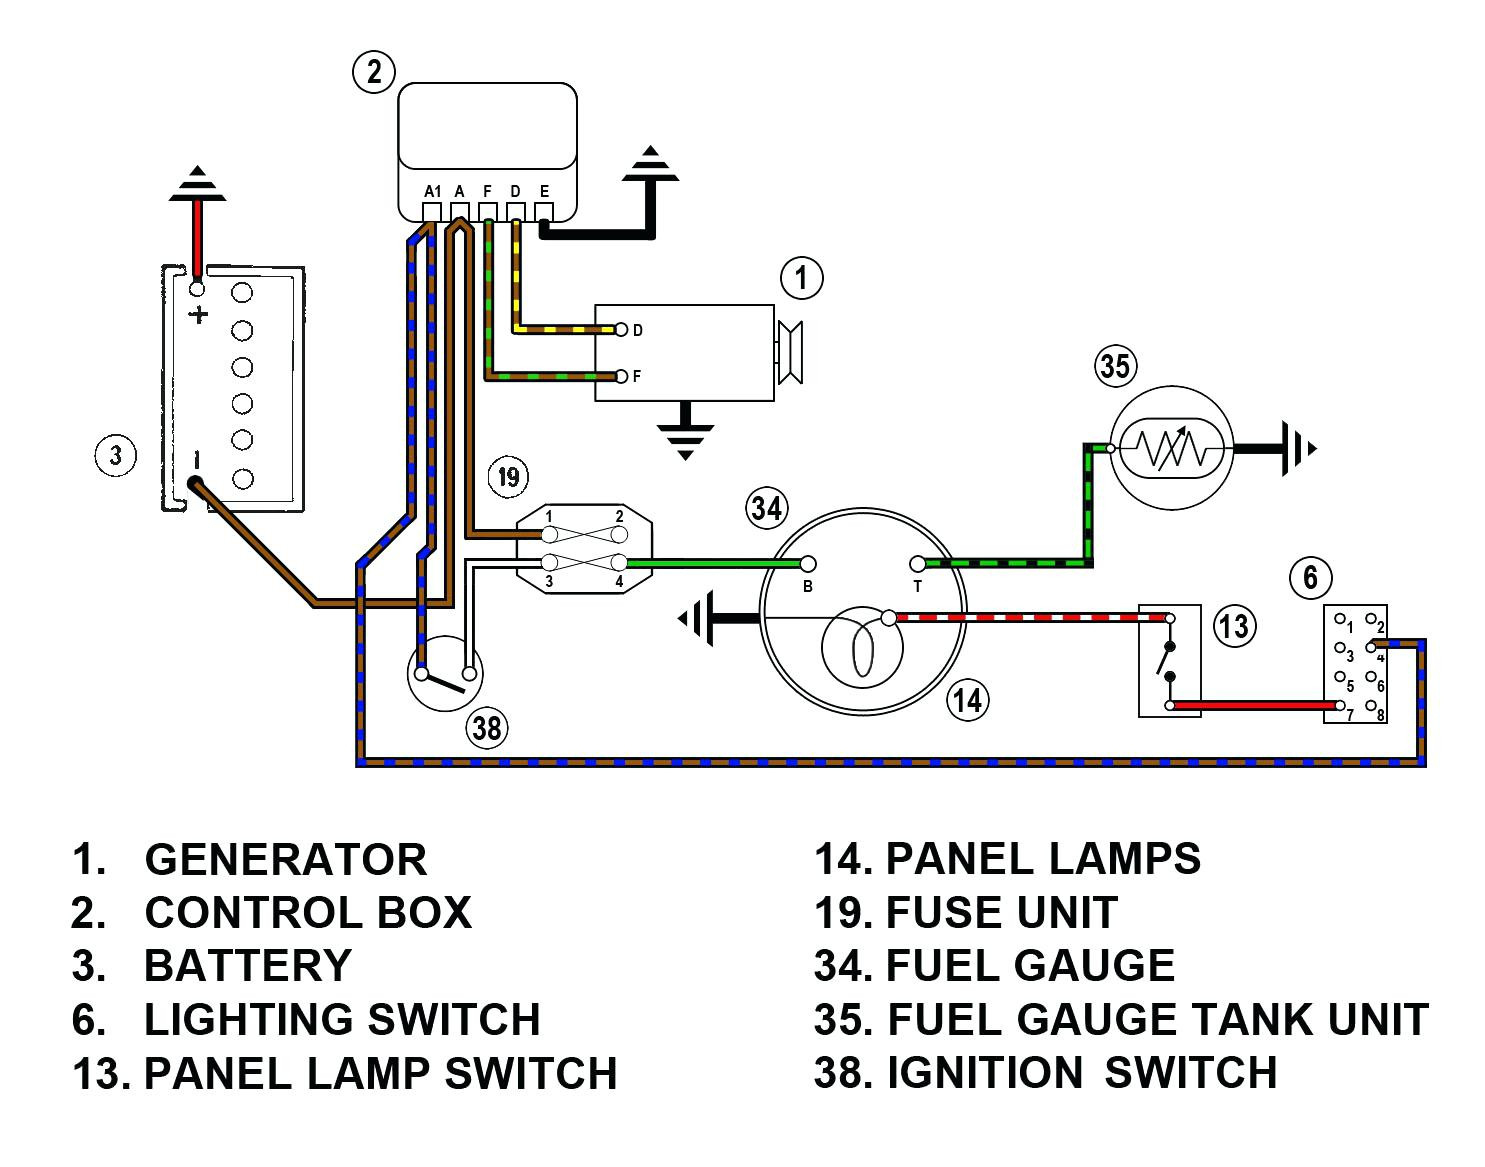 Harley Davidson Tachometer Wiring Diagram | New Wiring ... on